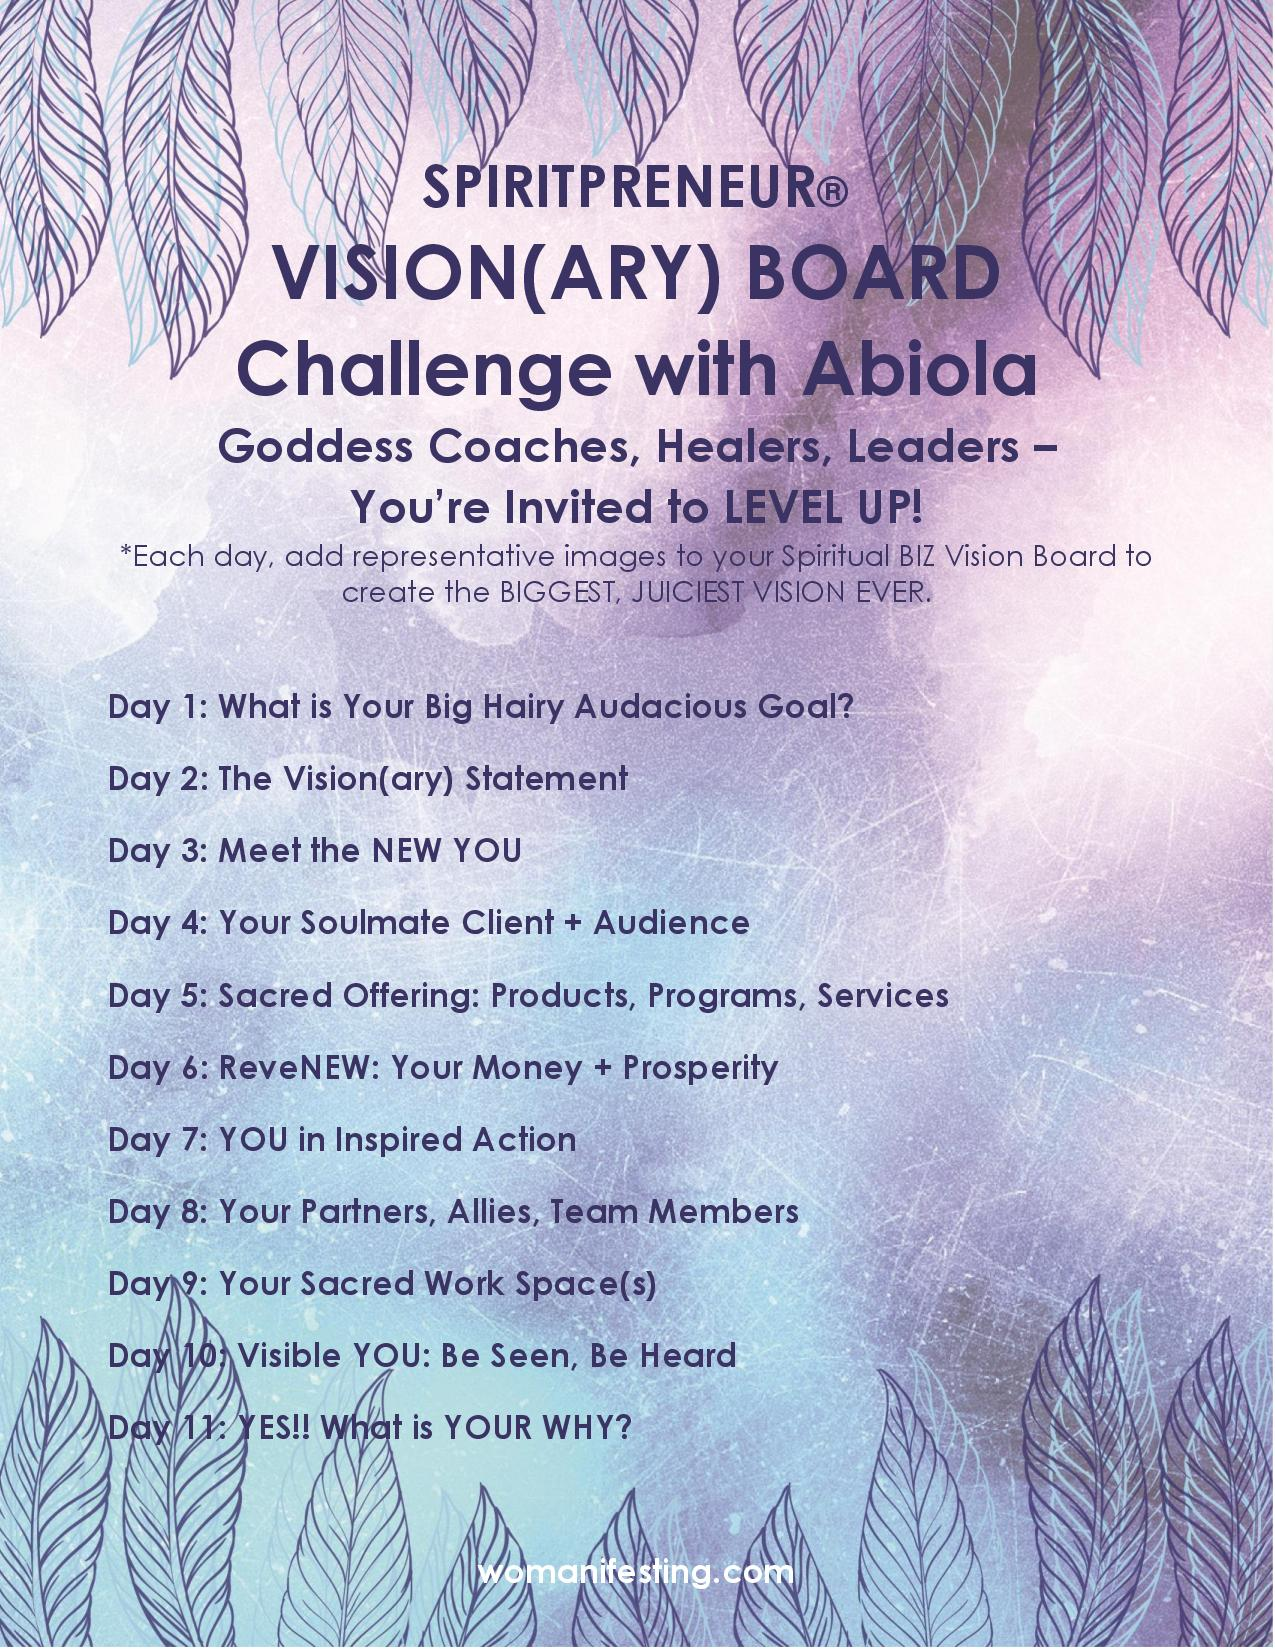 Visionary Board Challenge Day 1 of 11 This challenge is for women-identified coaches, healers and leaders. What is your big hairy audacious goal? Your goals should be big enough to scare you. Playing it safe in your vision or on your vision board is playing it safe in your life. That's why yesterday I said that your vision board is a fraud and a liar. Let's do better.